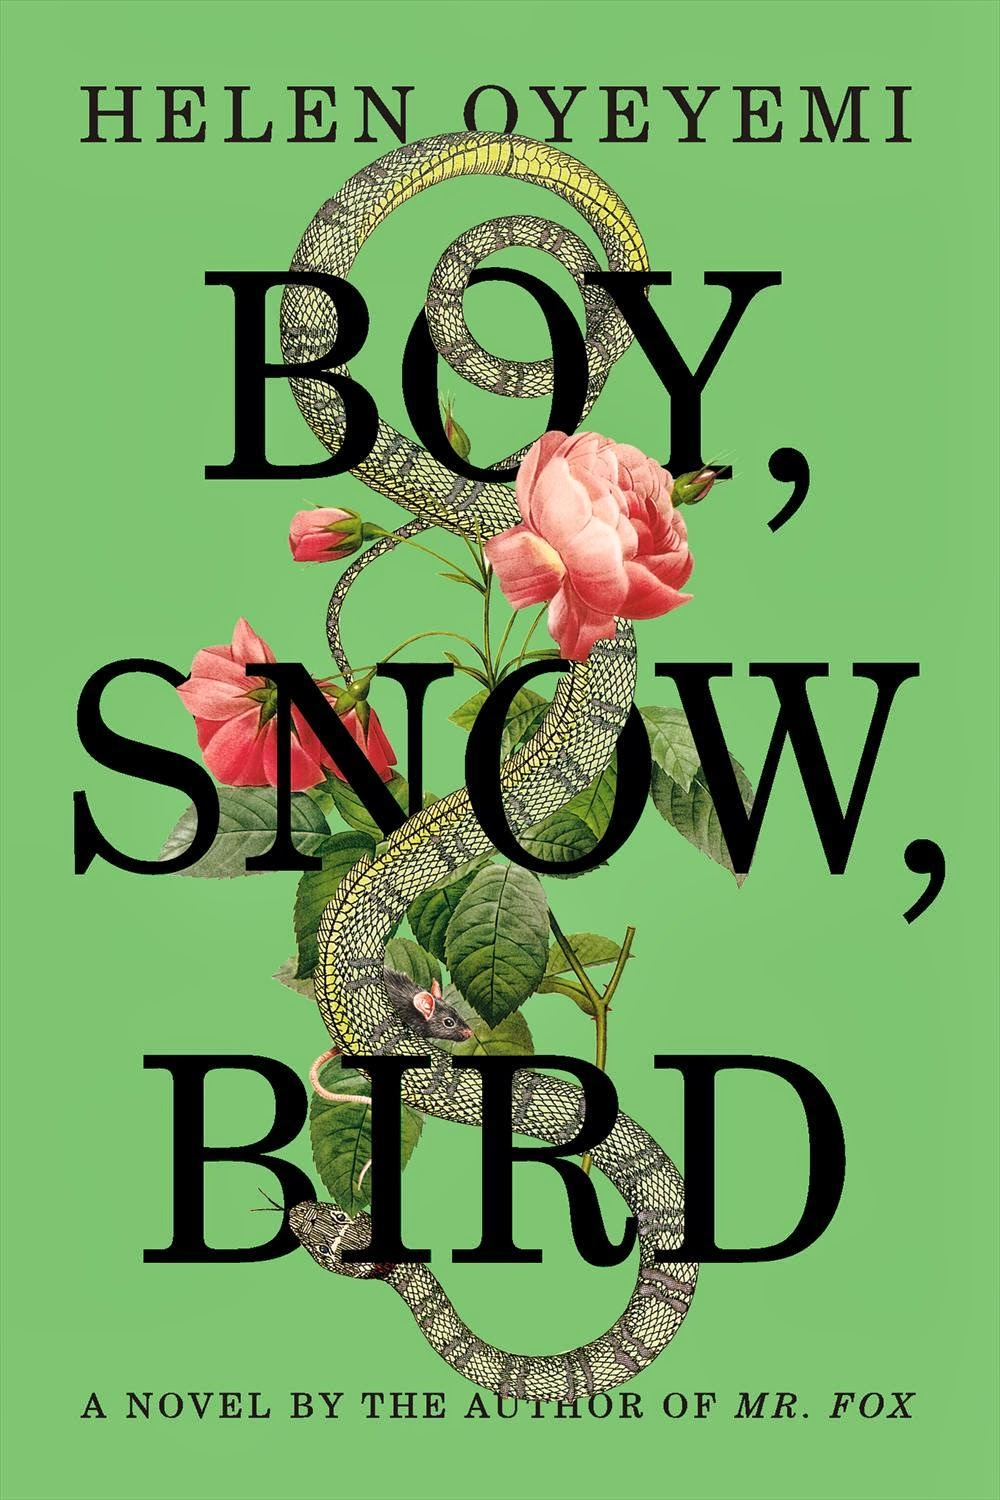 http://discover.halifaxpubliclibraries.ca/?q=title:%22boy%20snow%20bird%22